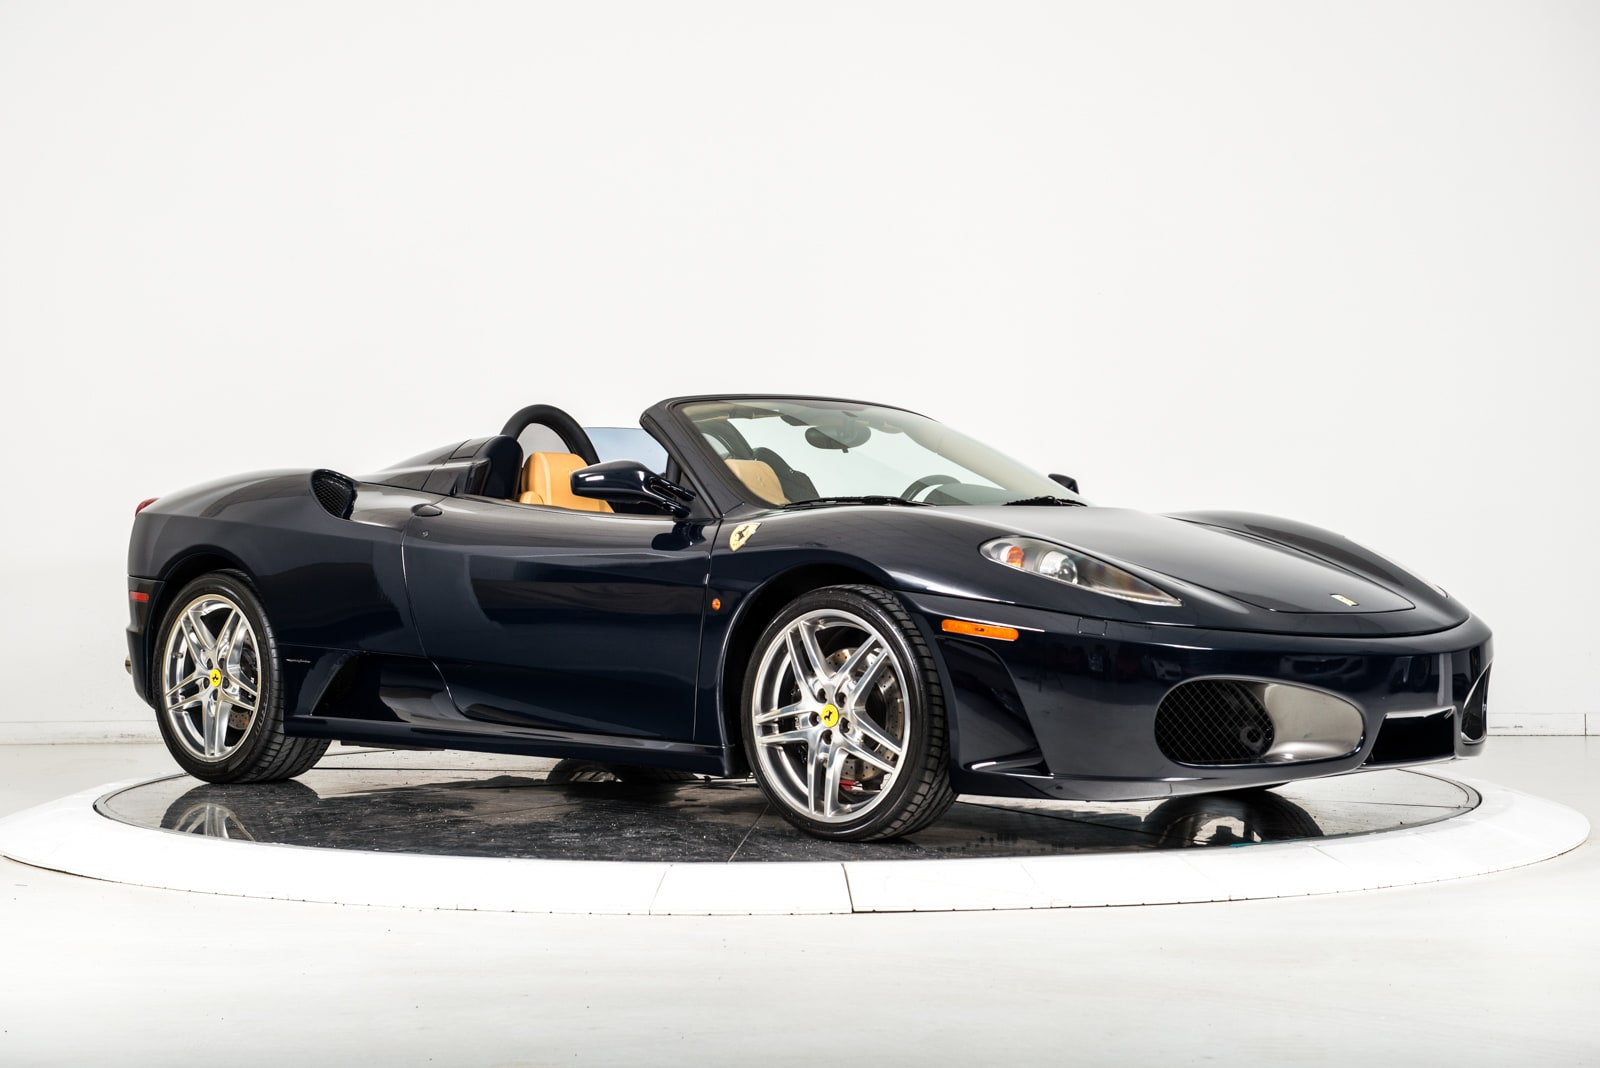 used 2005 ferrari f430 spider f1 for sale plainview near long island ny vin zffew59a650144044. Black Bedroom Furniture Sets. Home Design Ideas